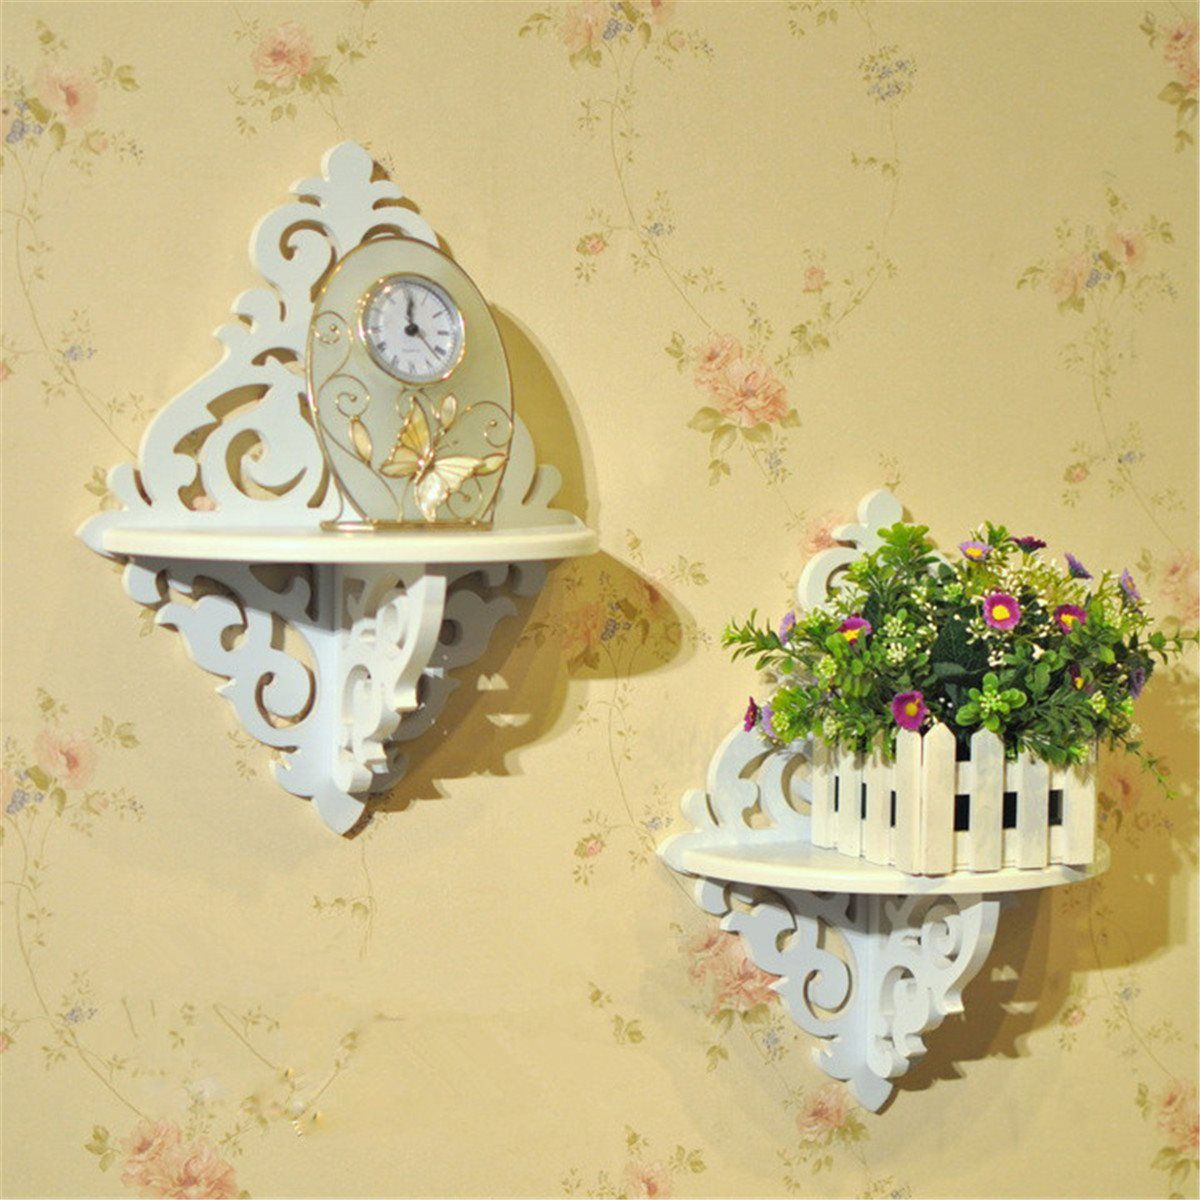 Cheap decorative wall candle holders, Buy Quality decorative towel ...